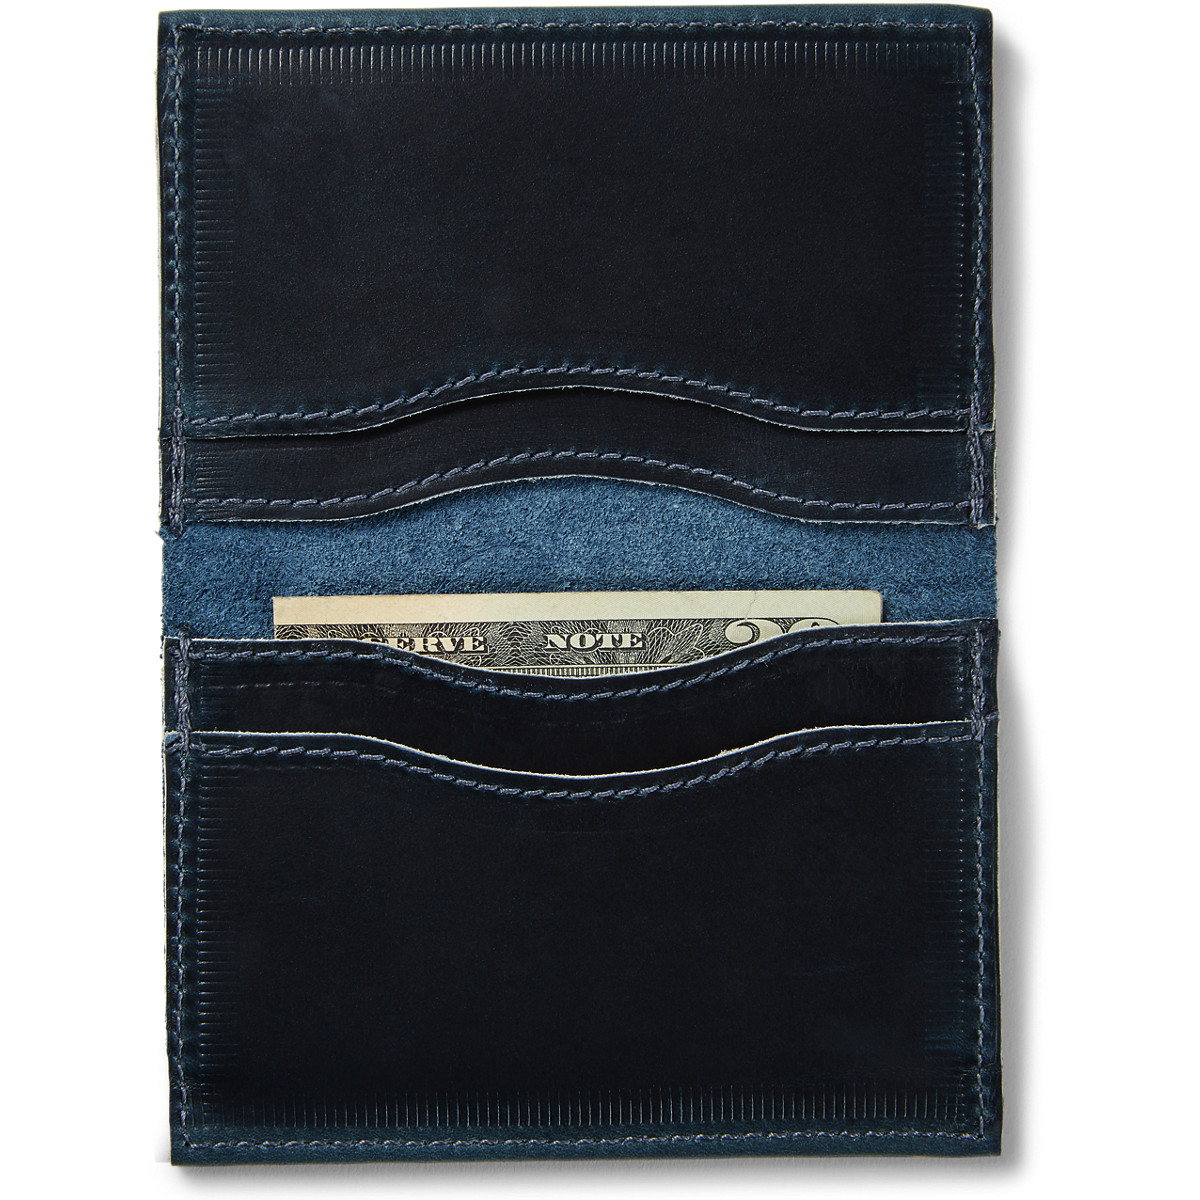 Danner Leather Wallet - Navy